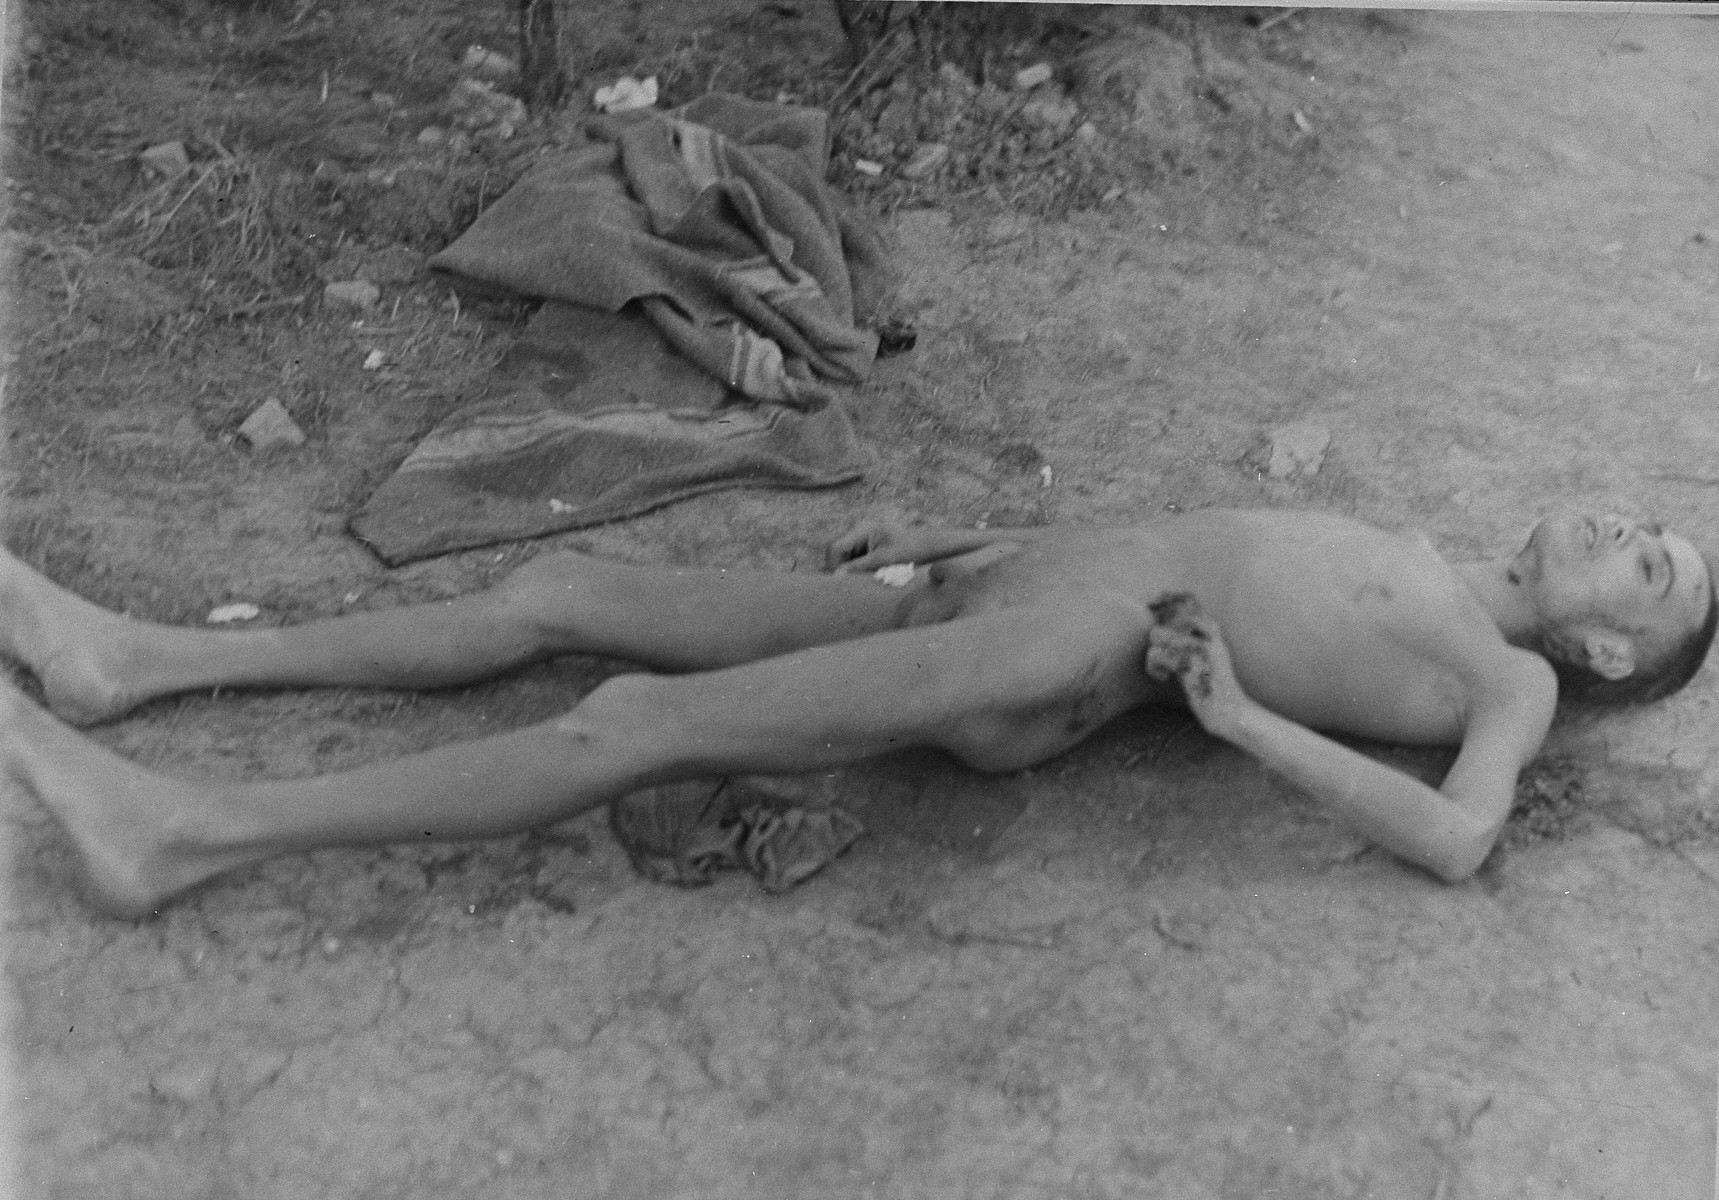 The corpse of a dead prisoner in Ohrdruf.